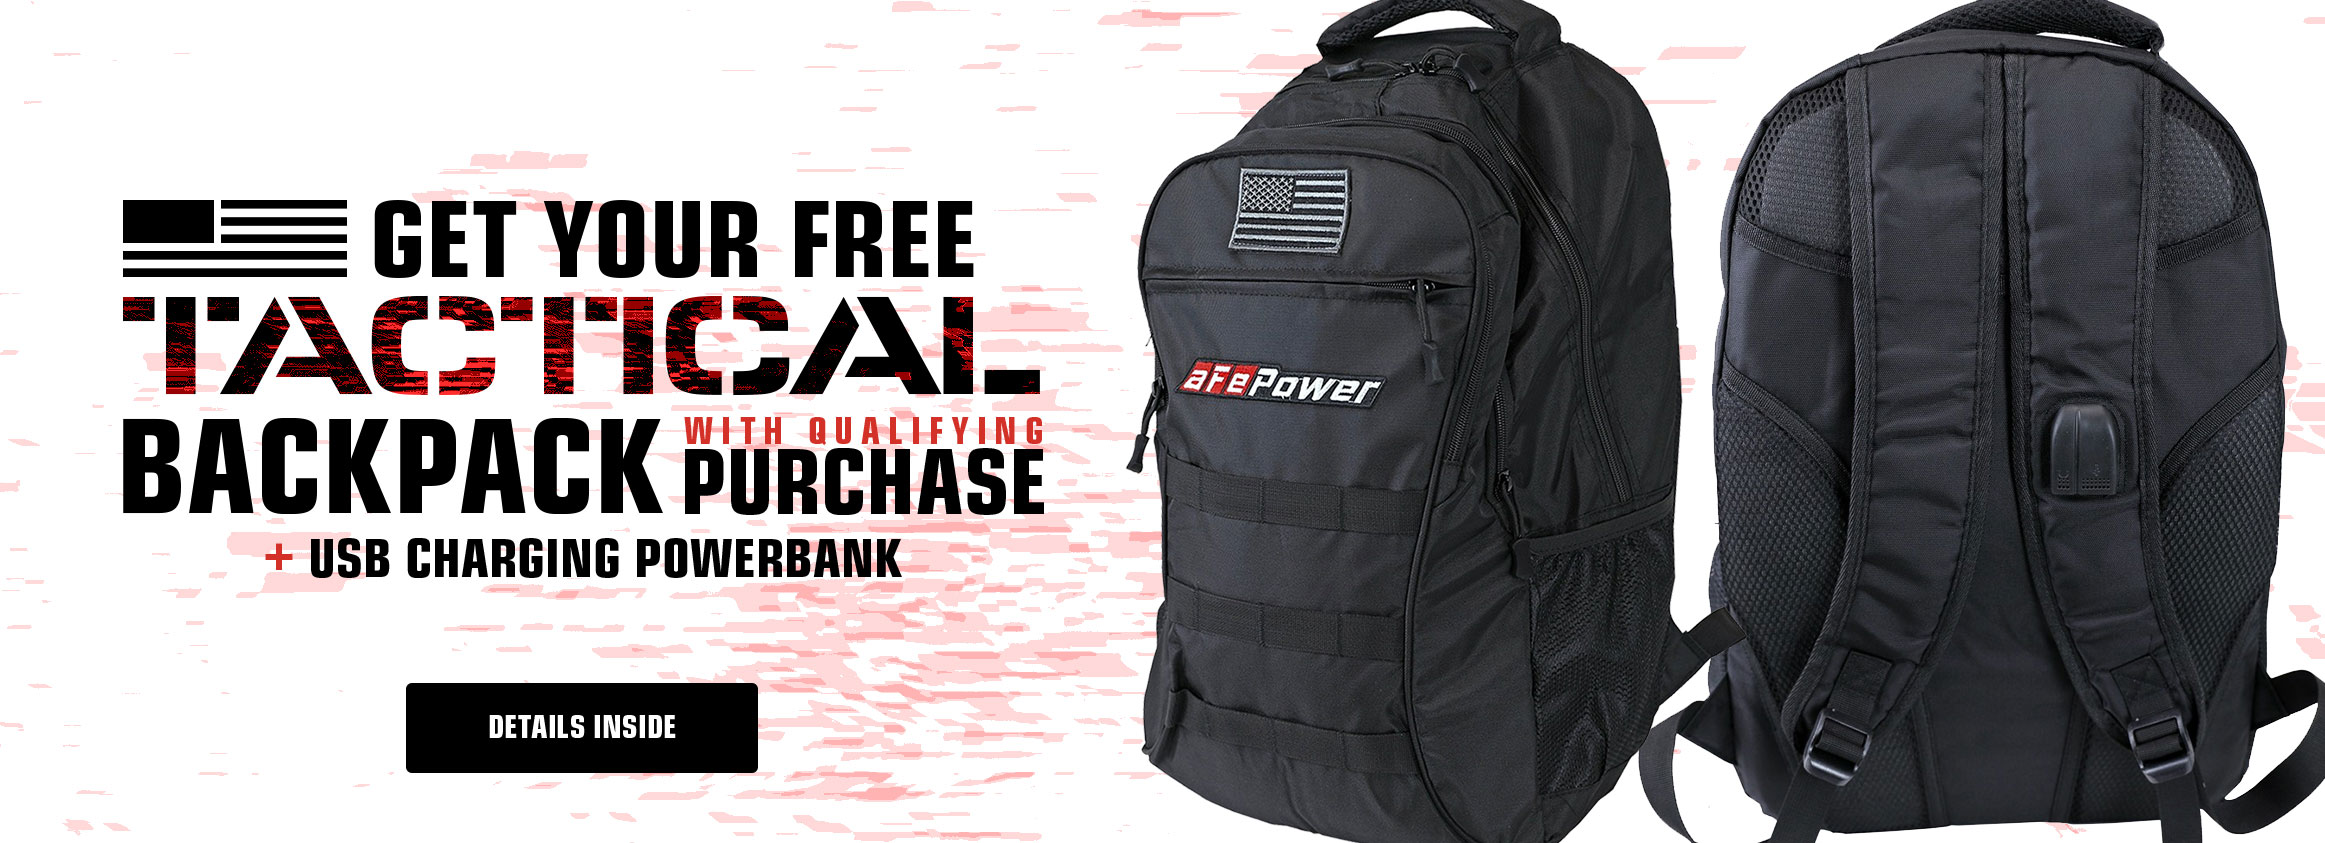 Backpack + Powerbank Promotion